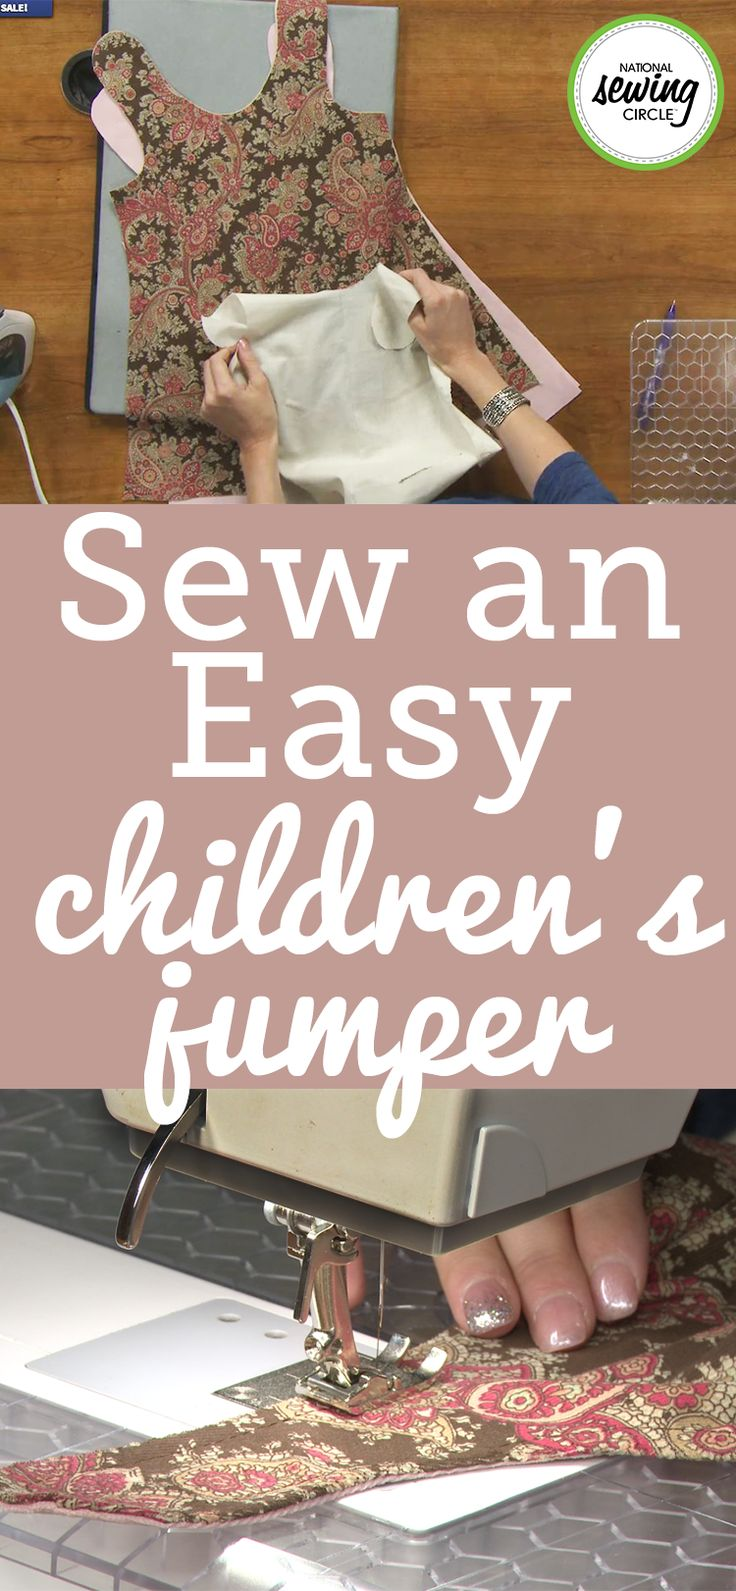 For some, the start of fall season means back to school shopping for cute clothes. For others, including Holly Willis, it's the time to start sewing back to school clothes. Learn how to make a jumper for a little girl sized 4/5 from an easy to follow, downloadable pattern Holly created.